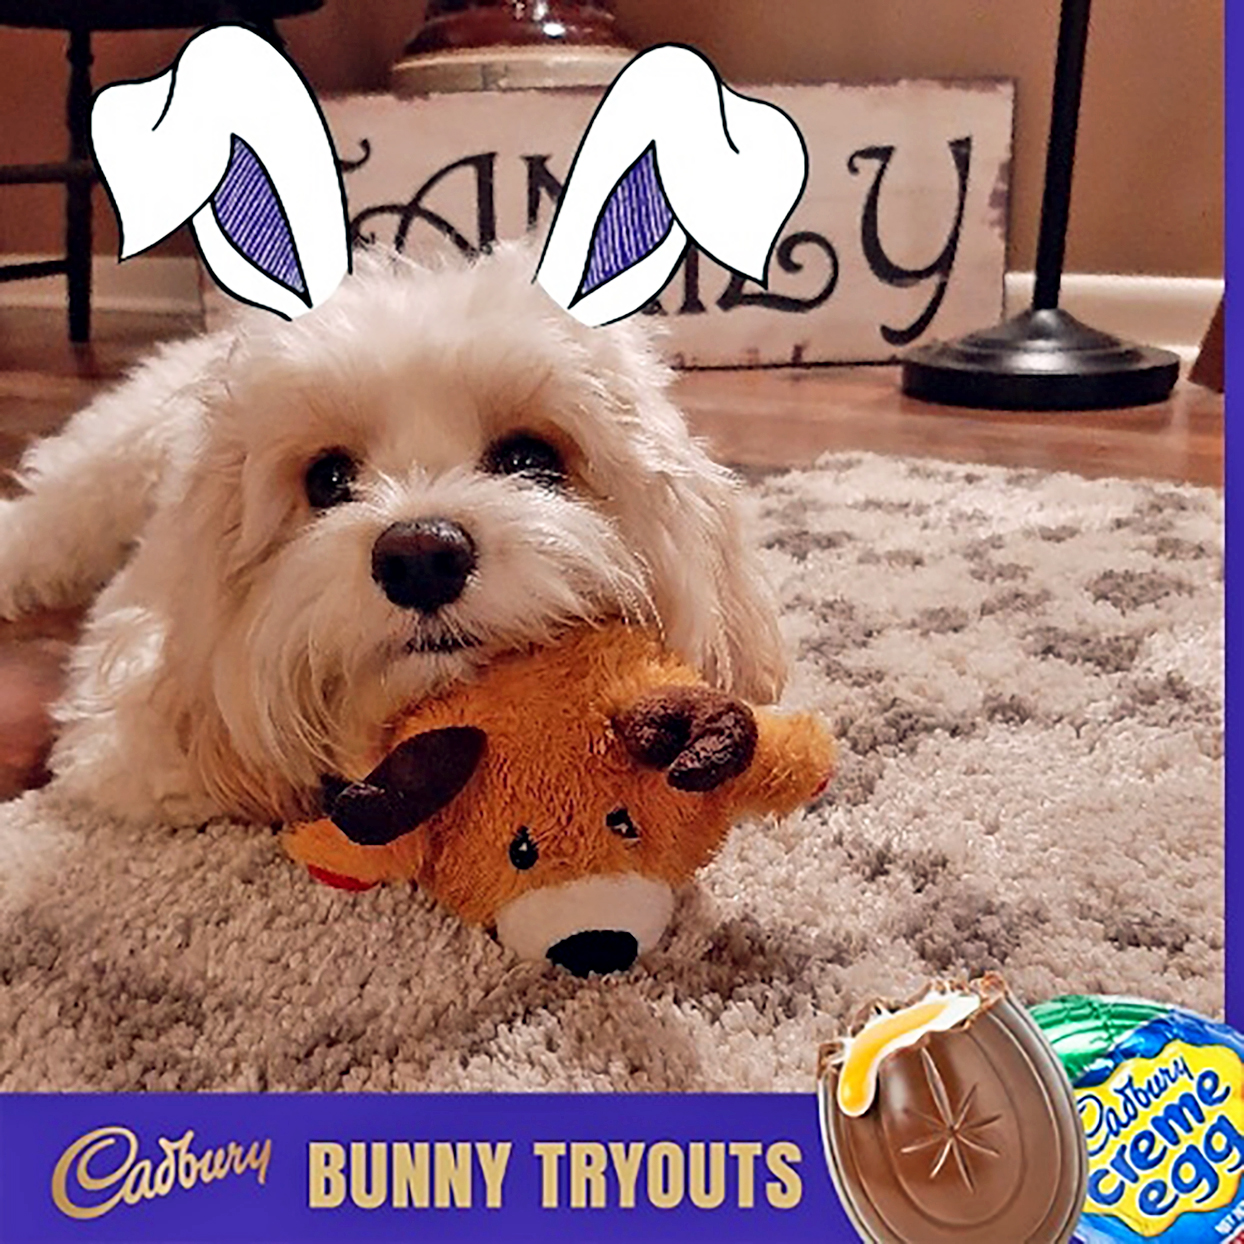 White dog wearing bunny ears plays with toy in Cadbury ad